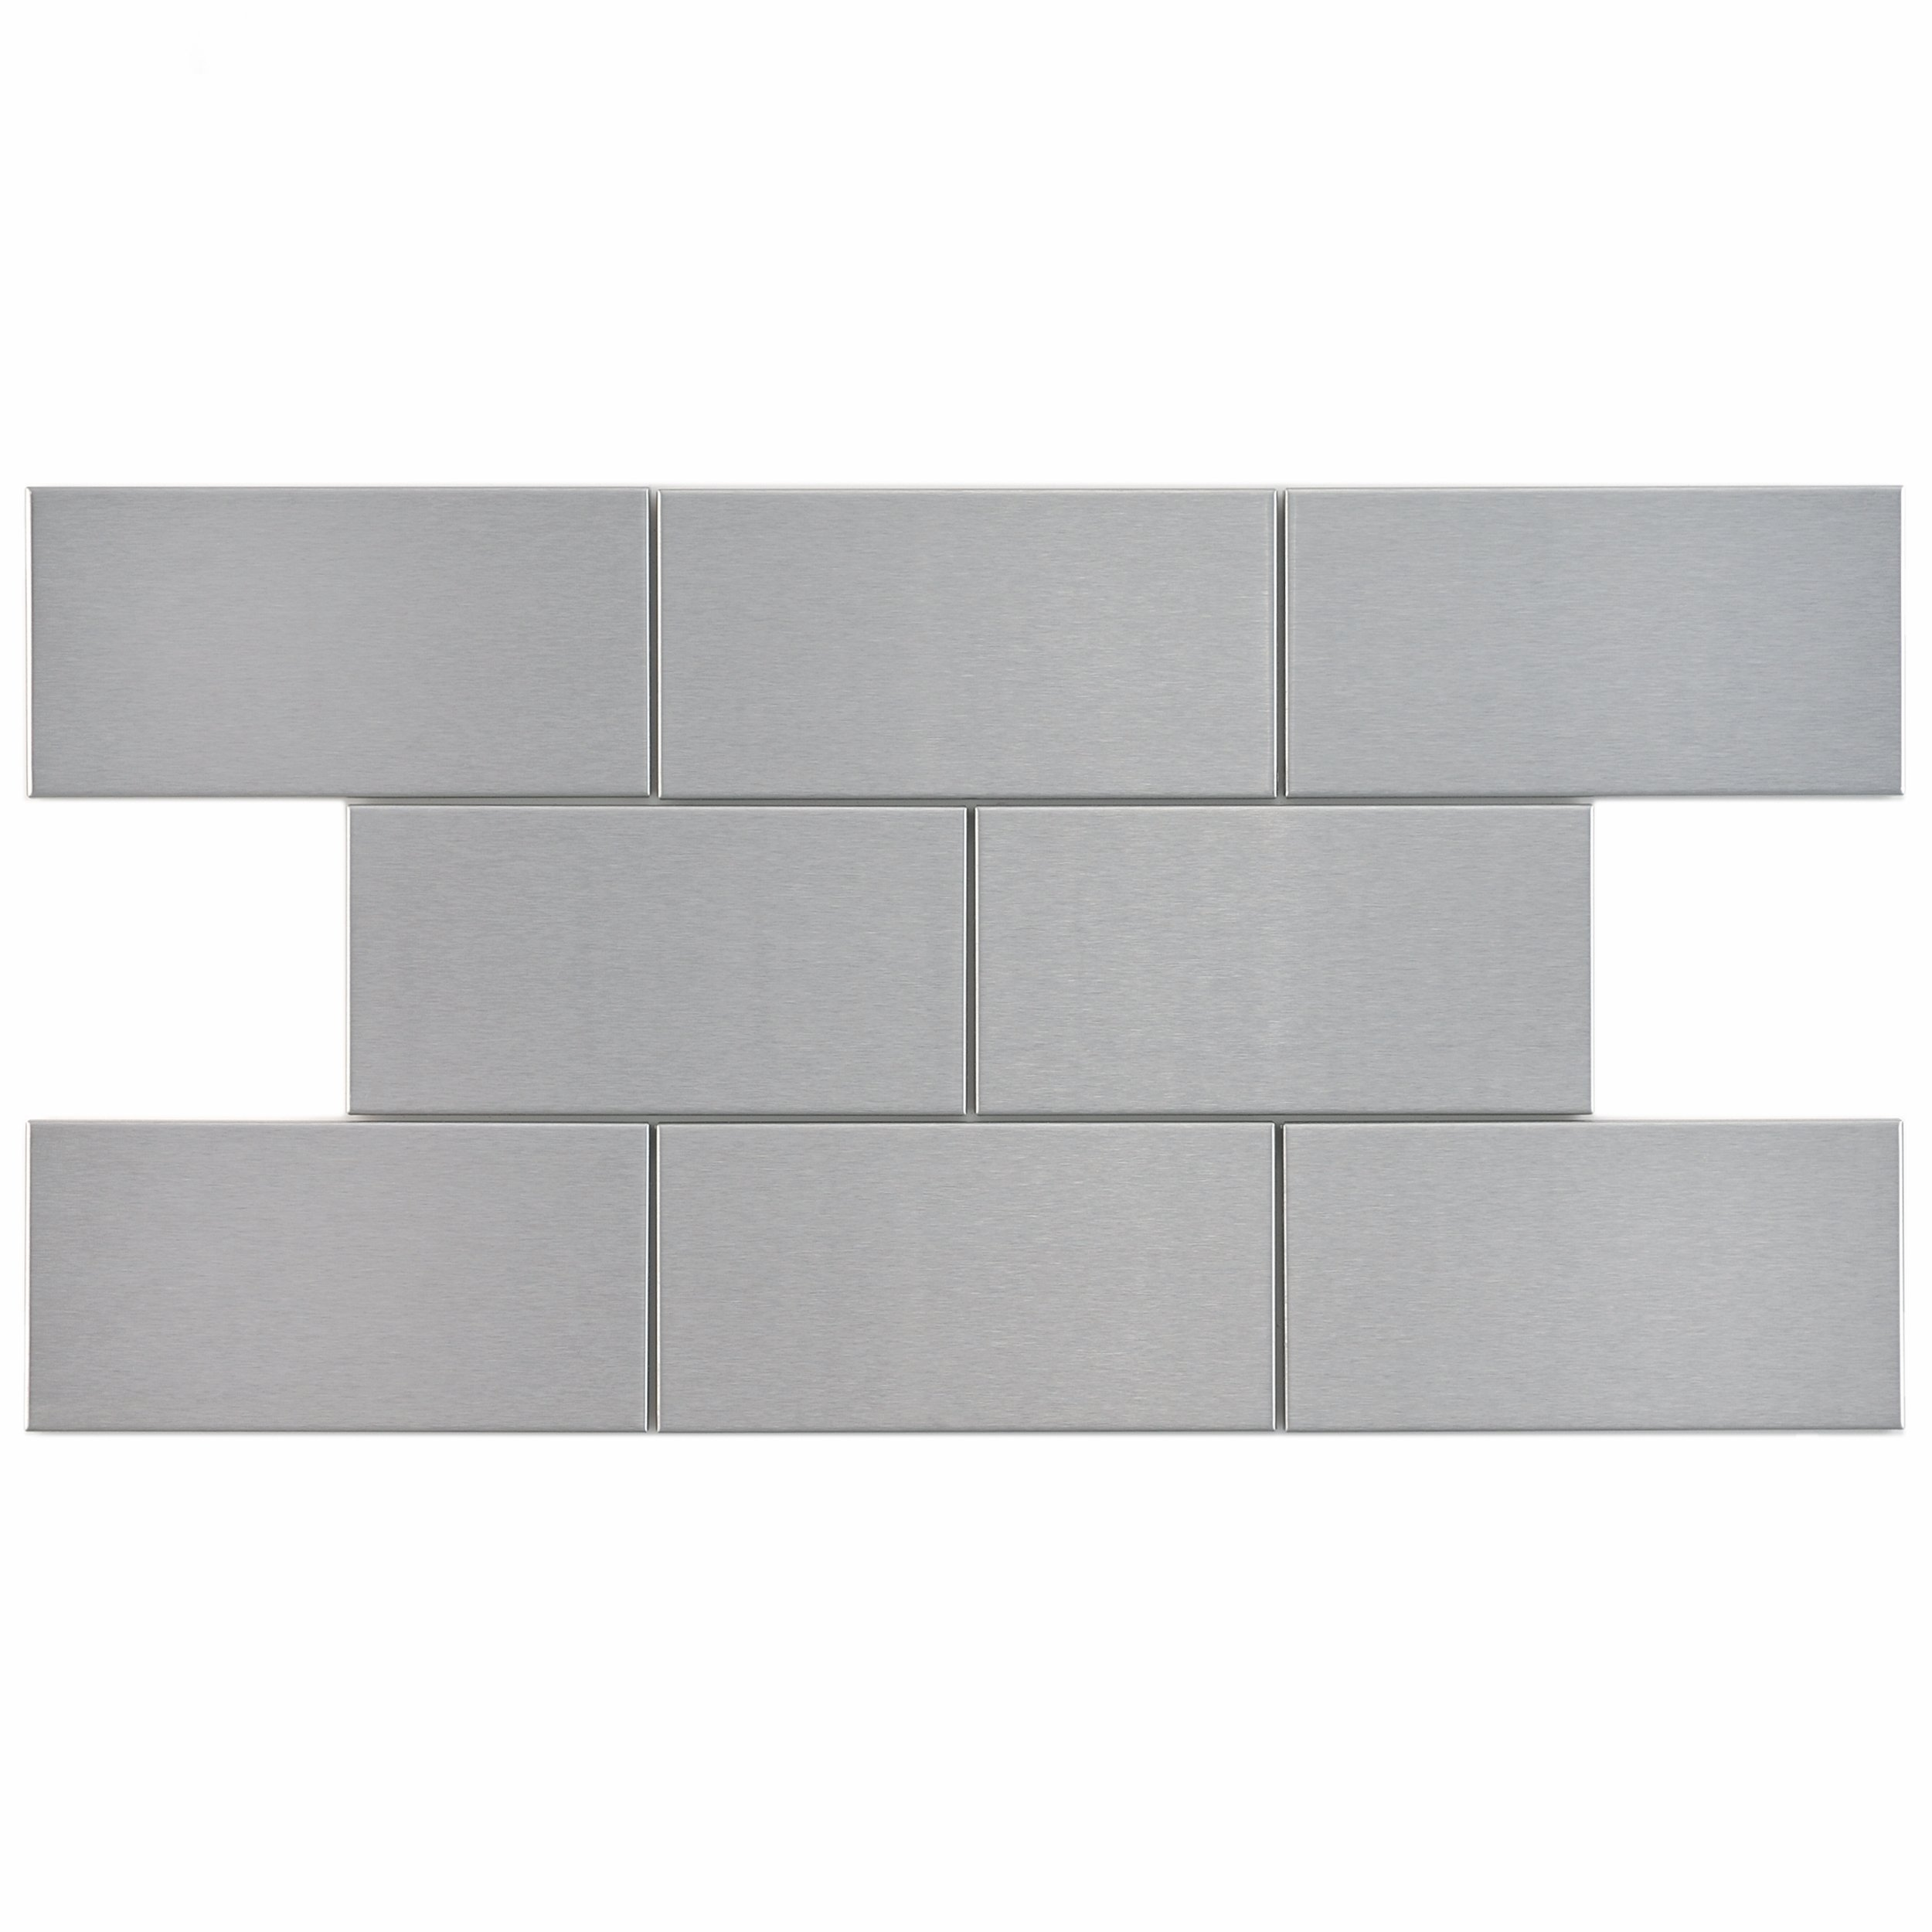 SomerTile GITAL3SS Vulcan Stainless Steel Metal Over Porcelain Wall Tile, 3'' x 6'', Silver by SOMERTILE (Image #1)